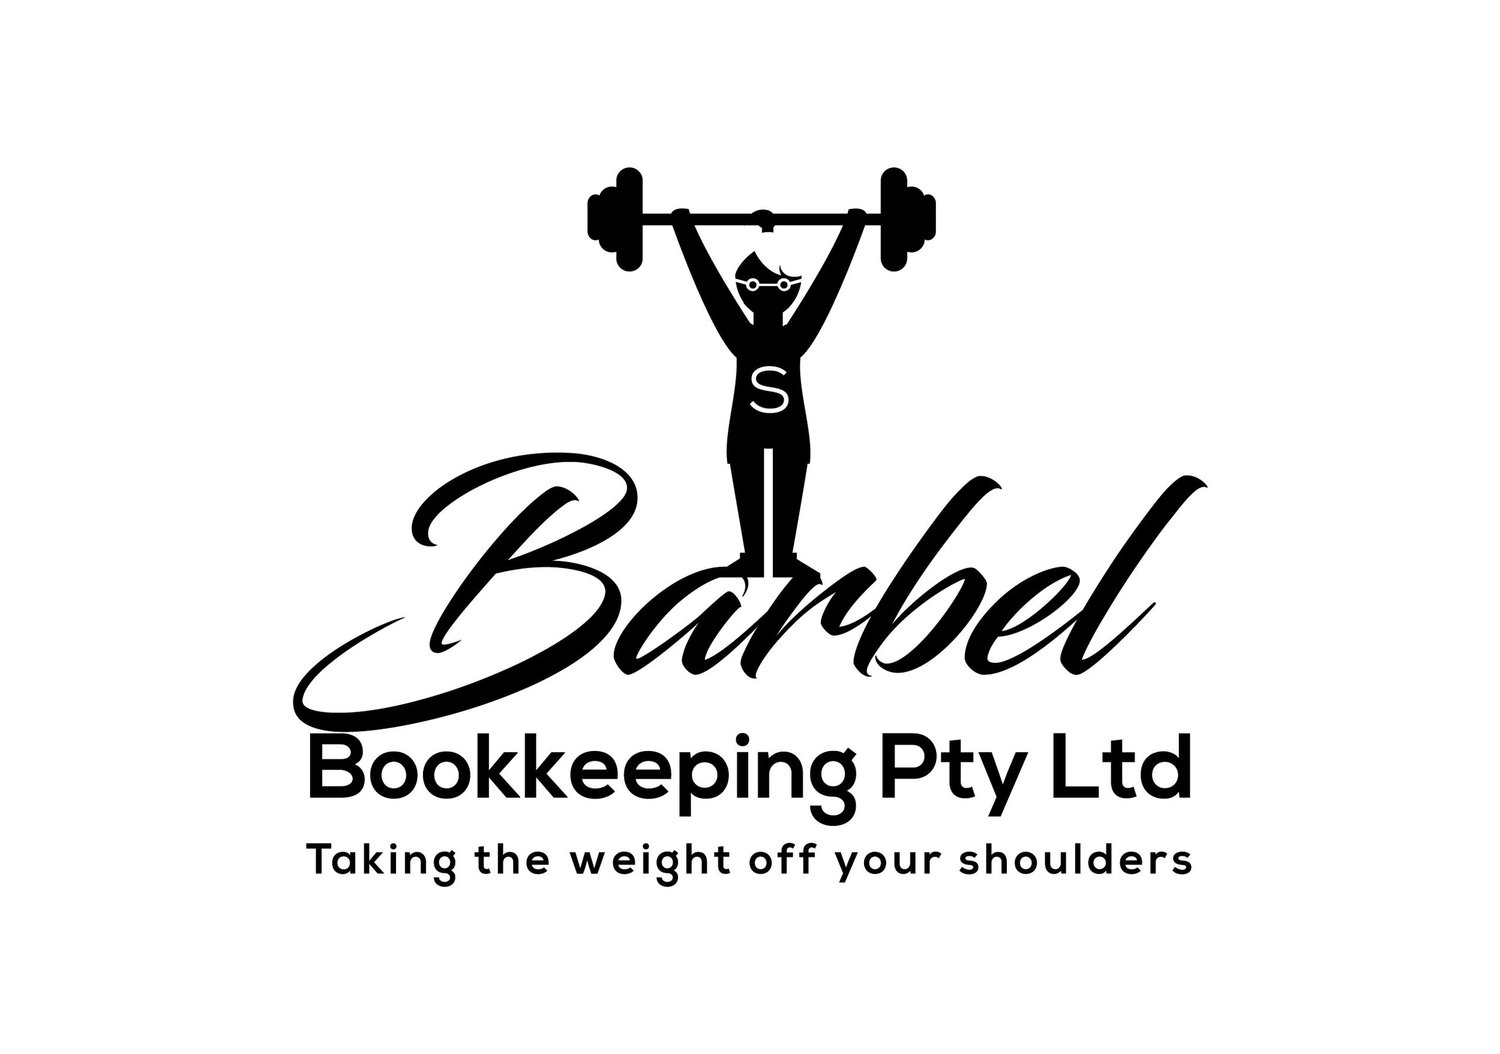 Barbel Bookkeeping Pty Ltd